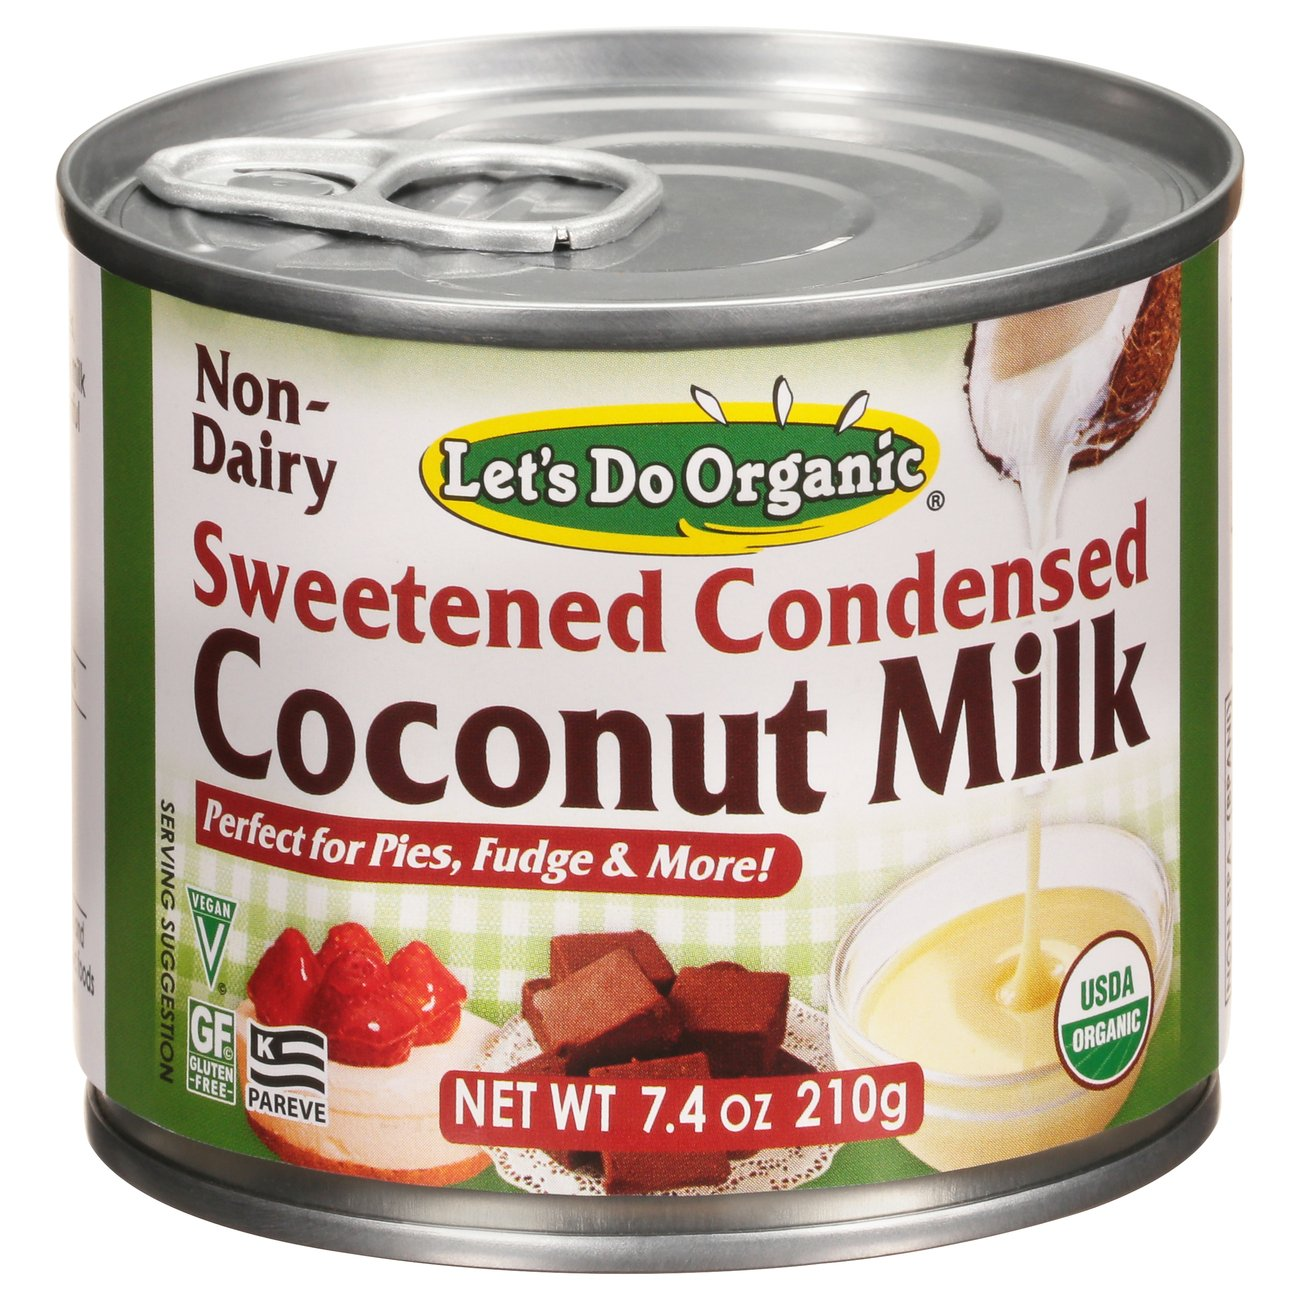 Let's Do... Organic Sweetened Condensed Organic Coconut Milk ‑ Shop  Evaporated Milk at H‑E‑B